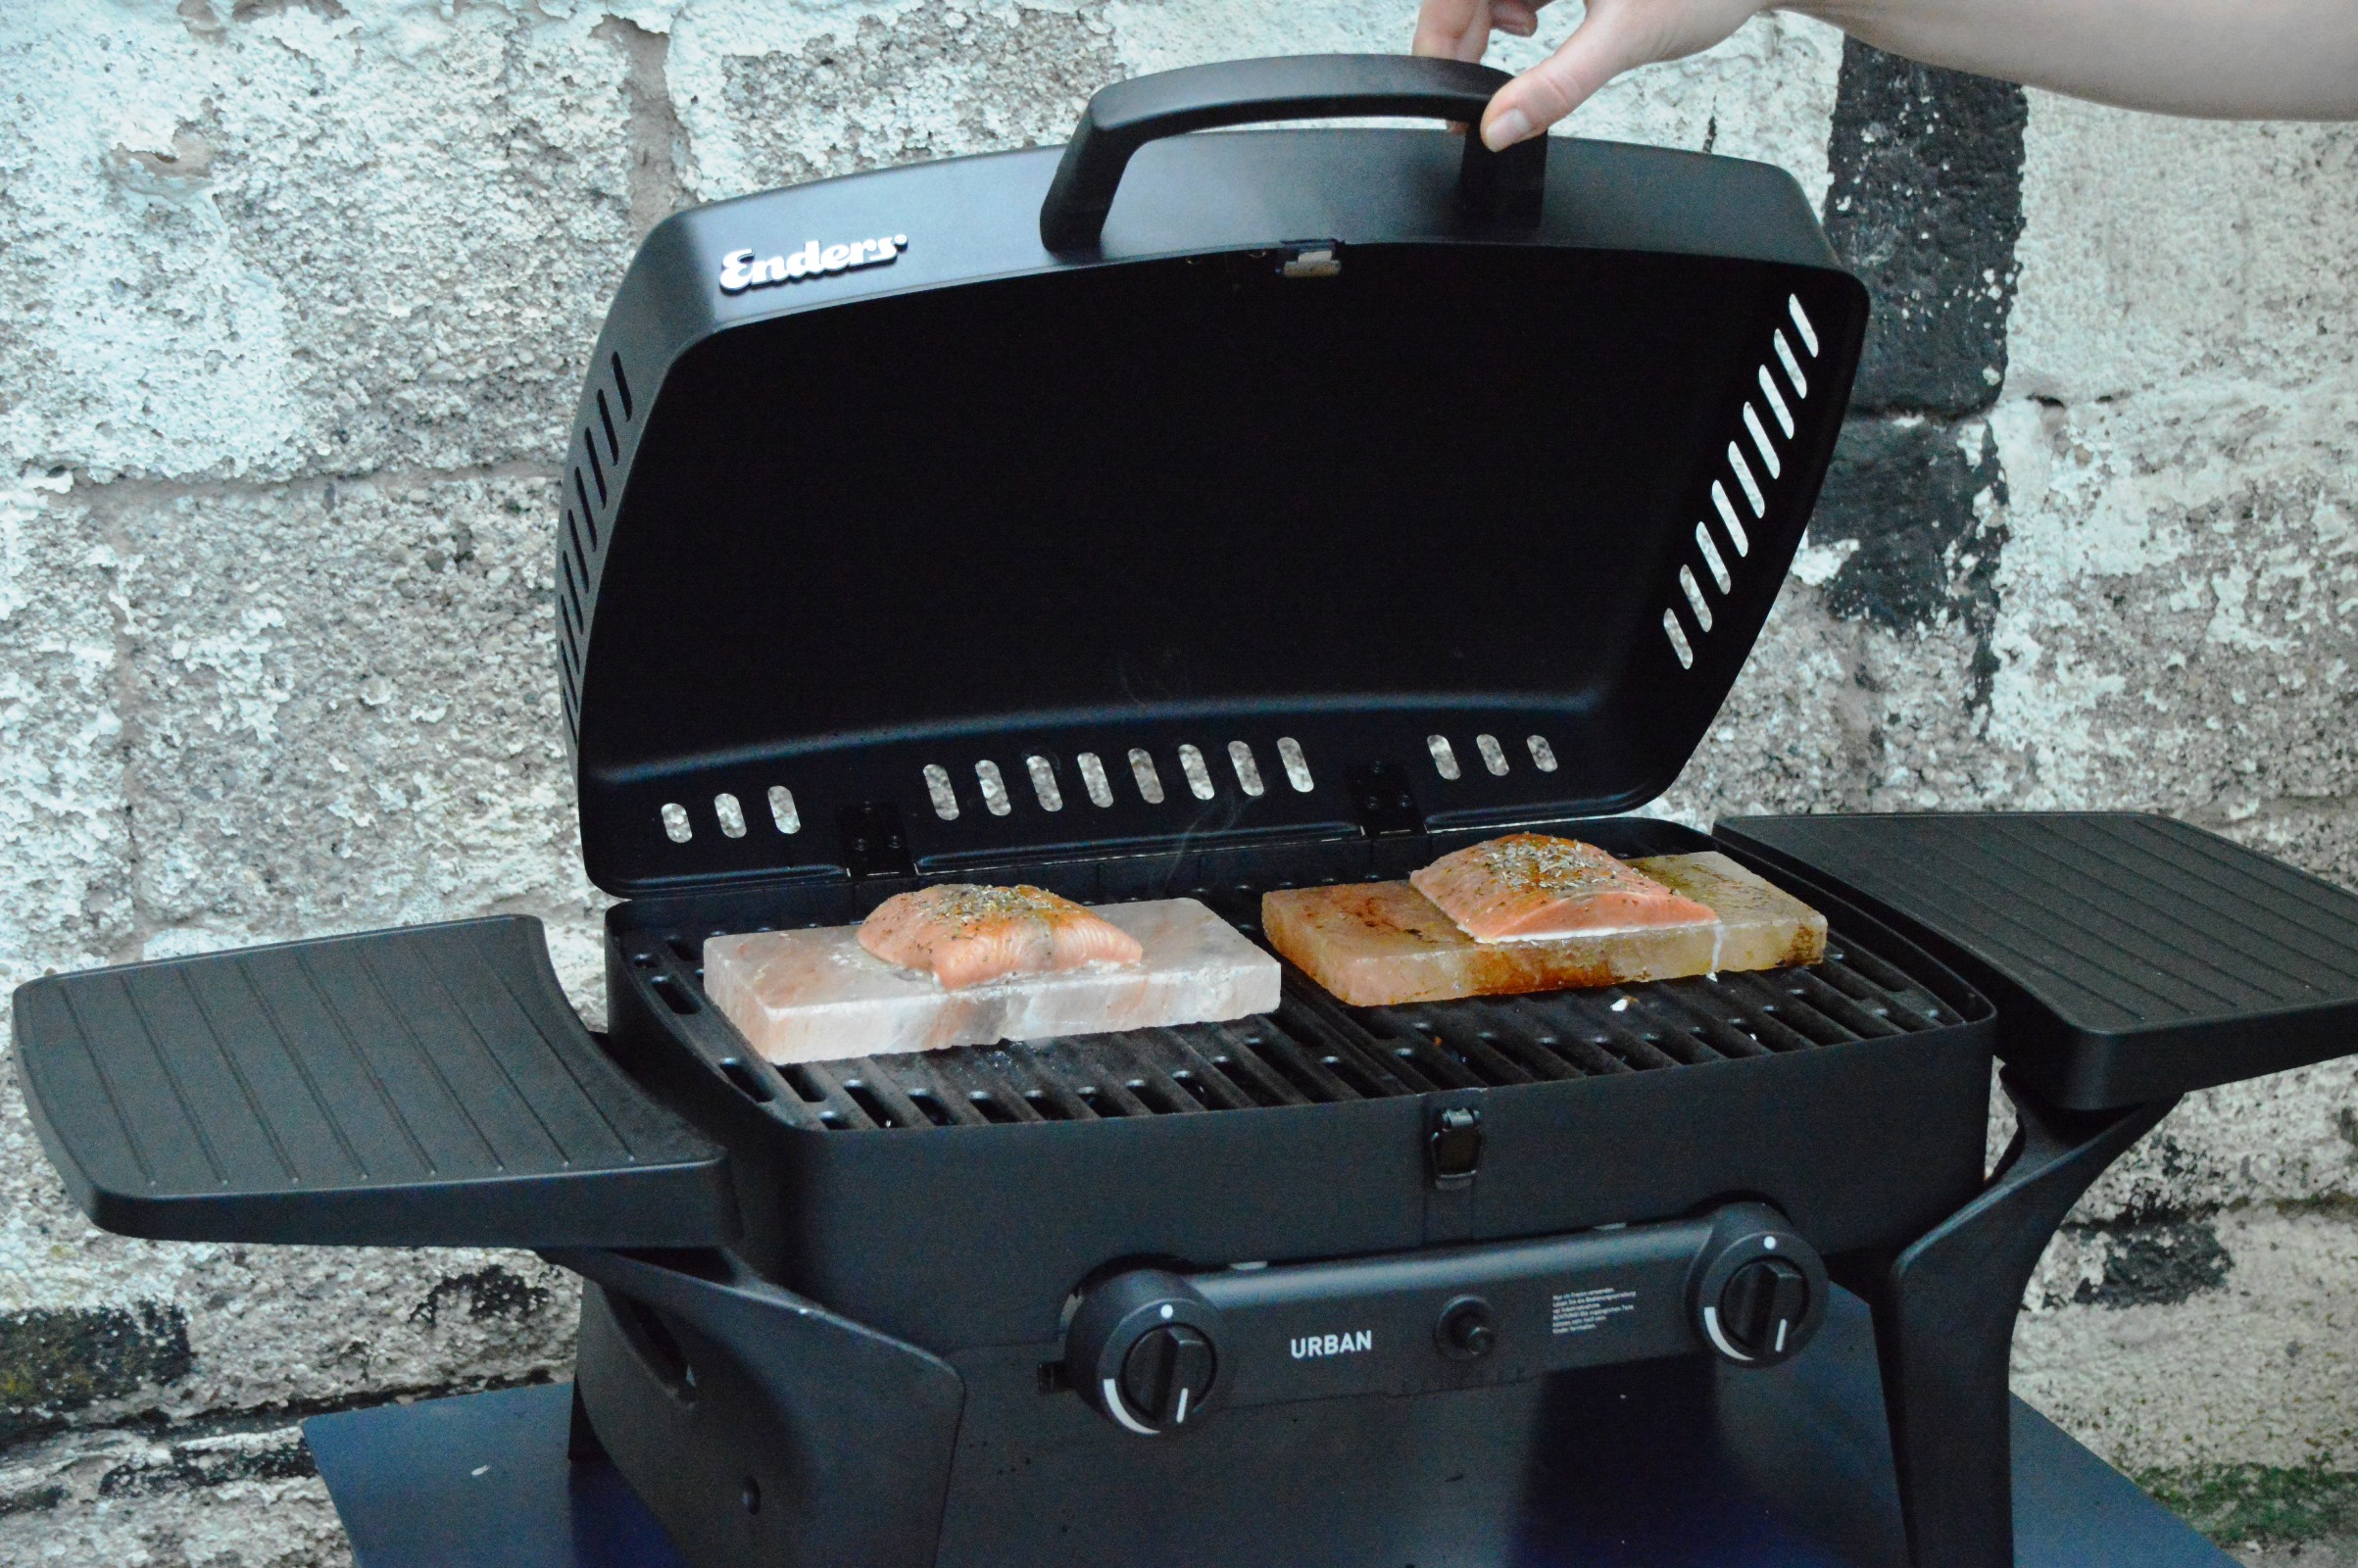 Enders Gasgrill Räuchern : Angegrillt enders urban im test bacon zum steak